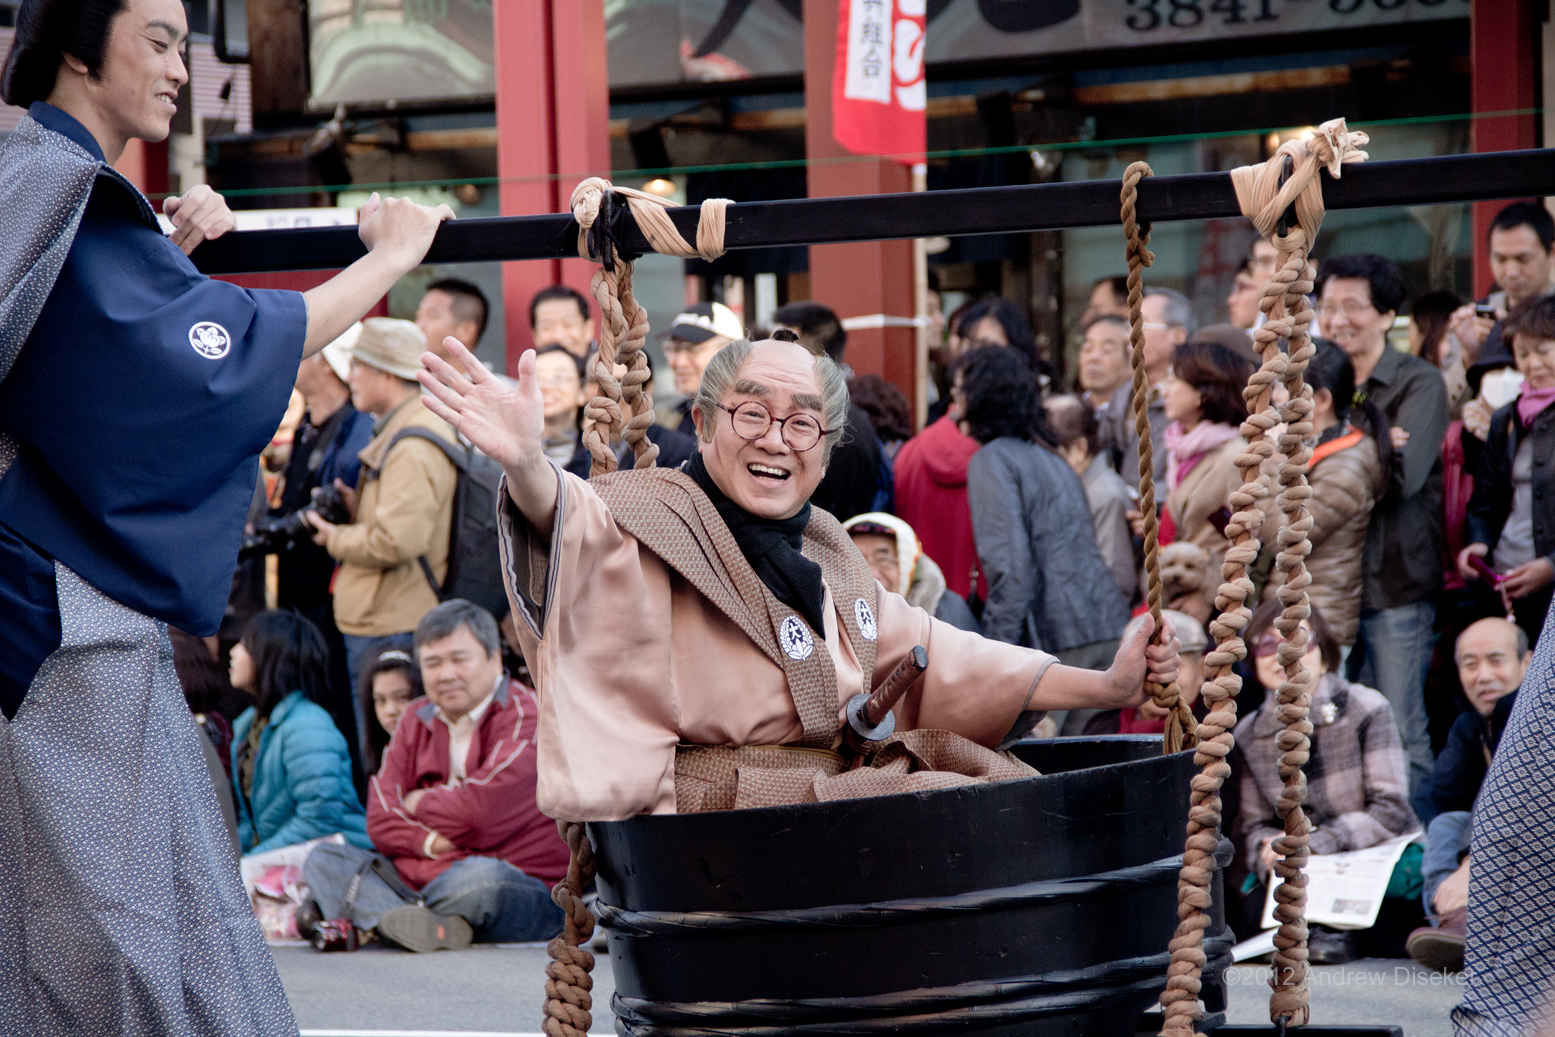 man being carried in bucket waving and smiling at the crowd